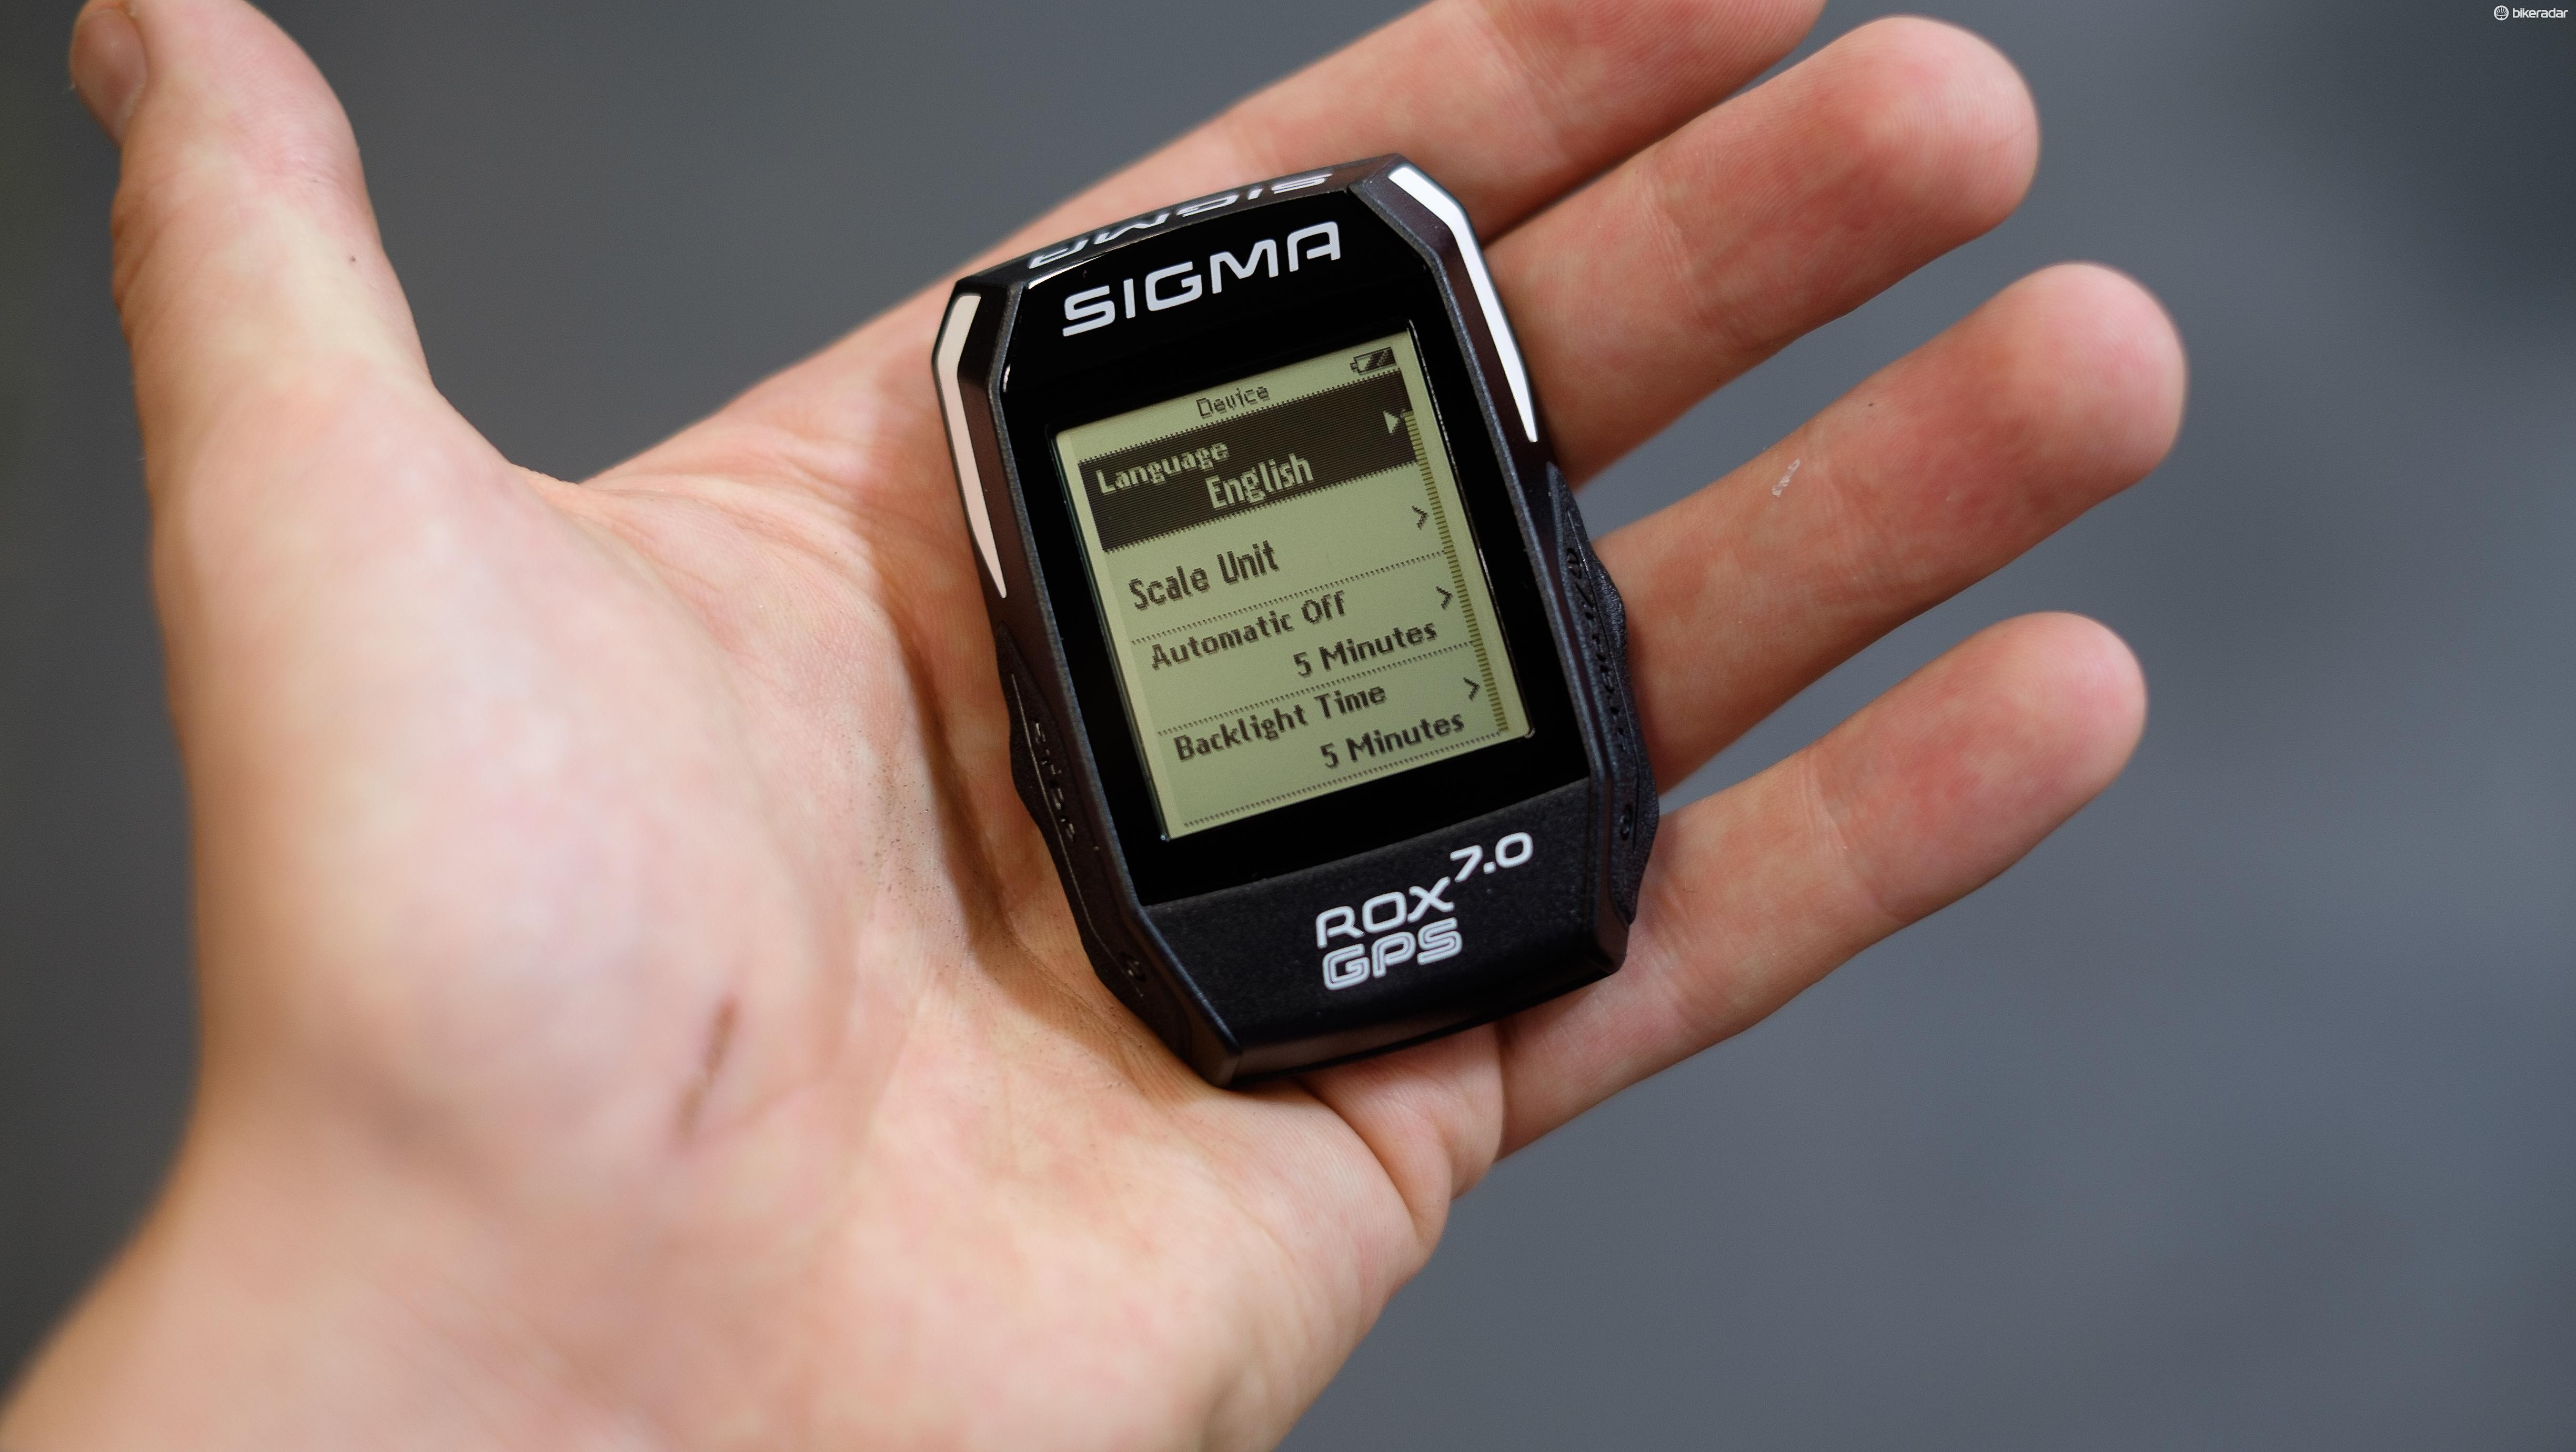 There are plenty of functions packed into the Sigma ROX GPS 7.0